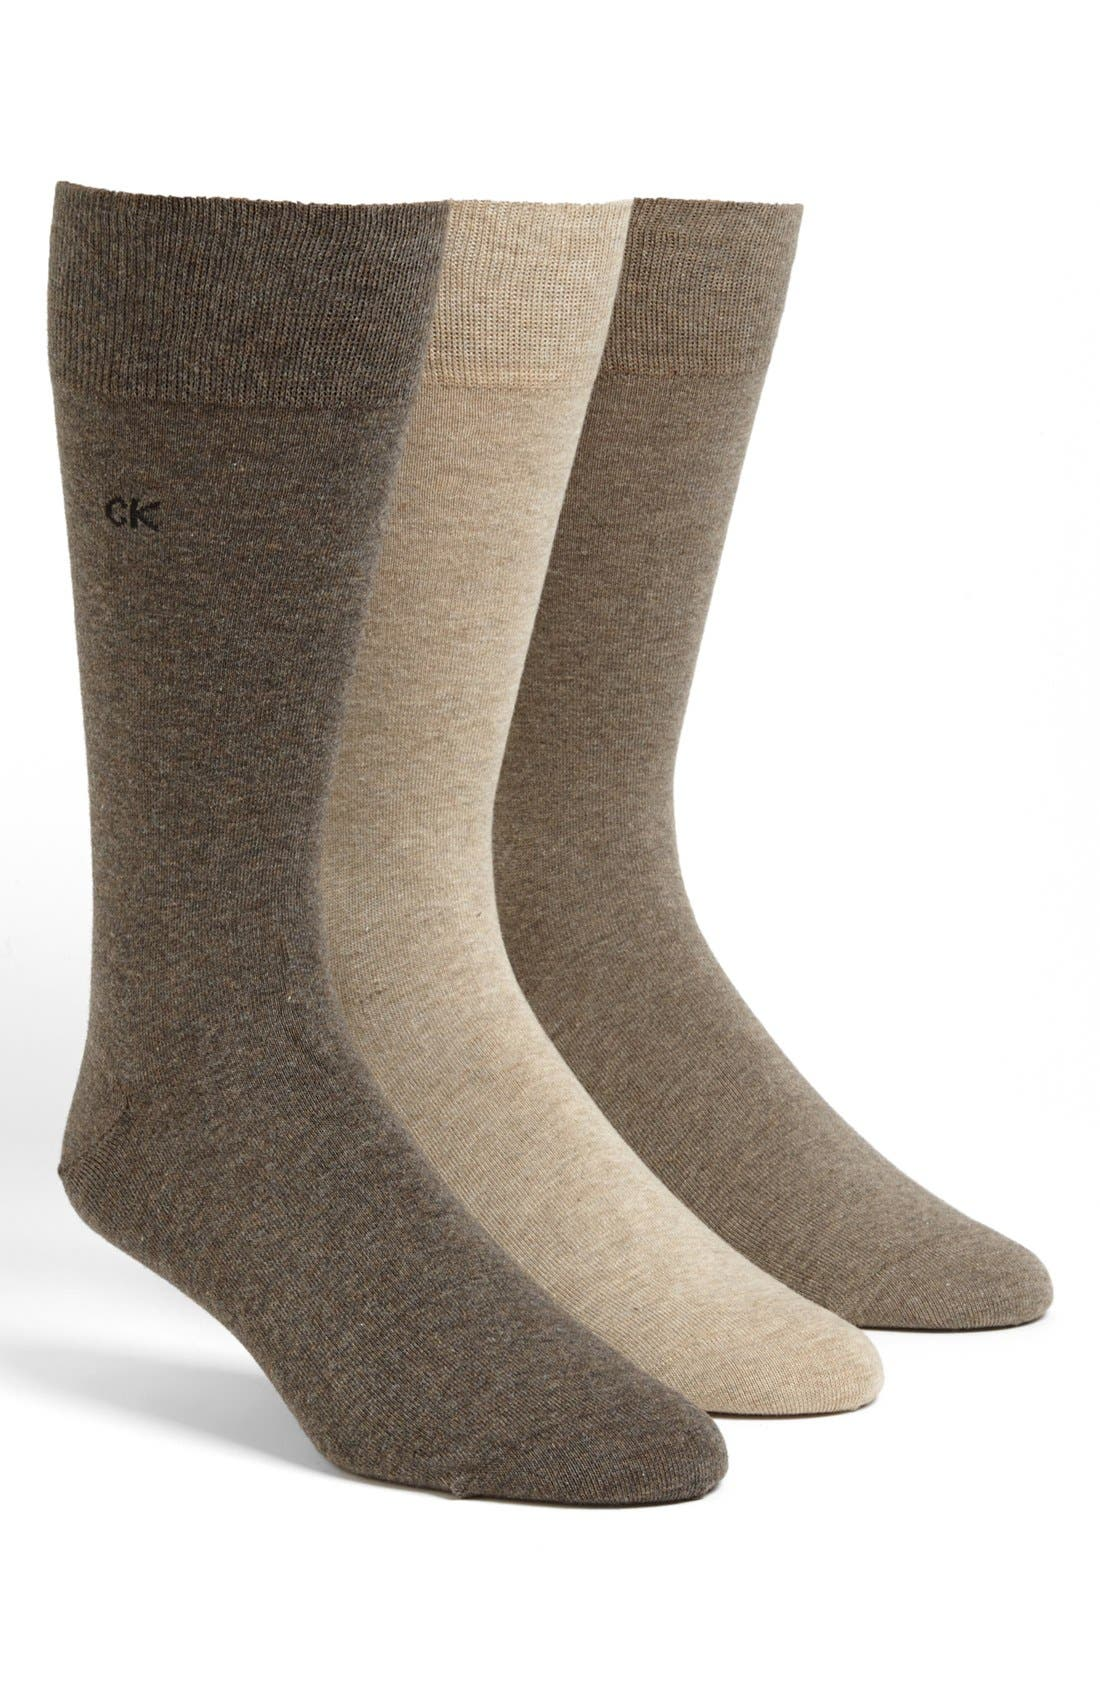 Assorted 3-Pack Socks,                         Main,                         color, ASSORTED BROWN